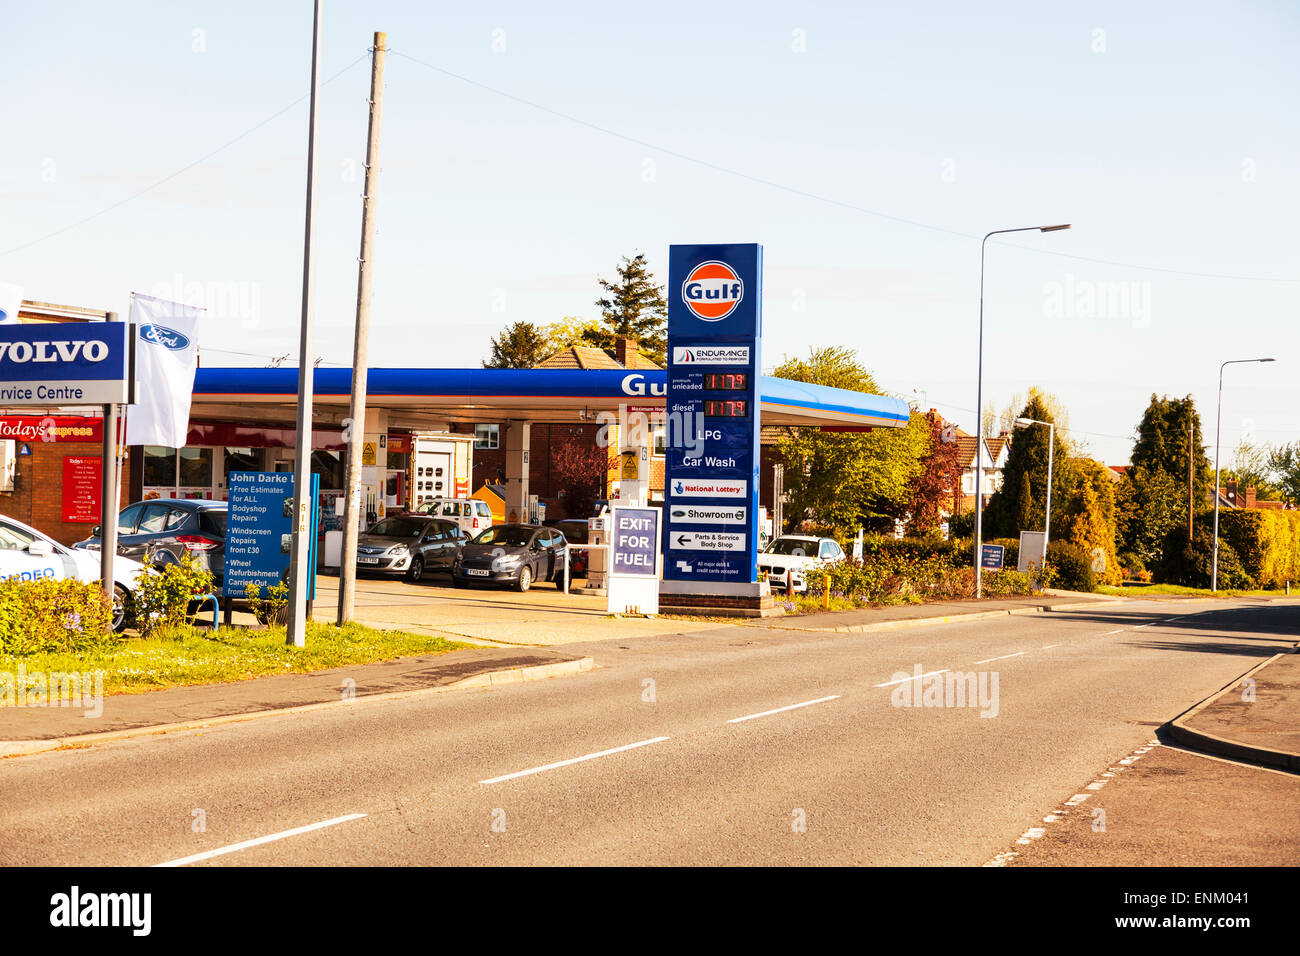 Litre Diesel Gulf Petrol Station Unleaded And Diesel Same Price Per Litre Stock